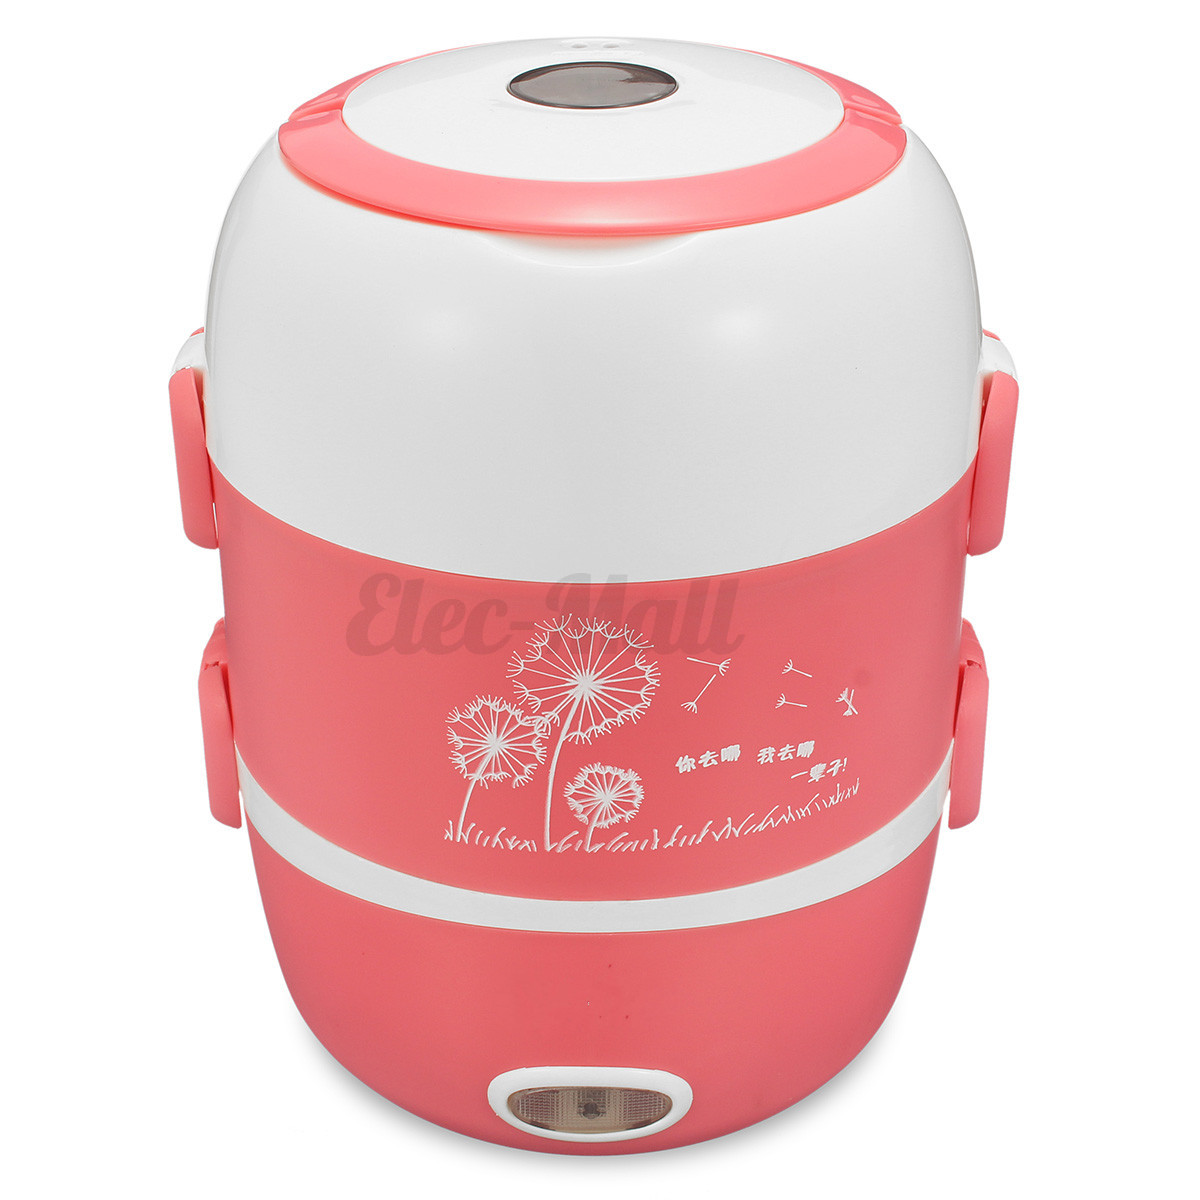 3 Layer 2l Portable Lunch Box Rice Cooker Steamer 220v